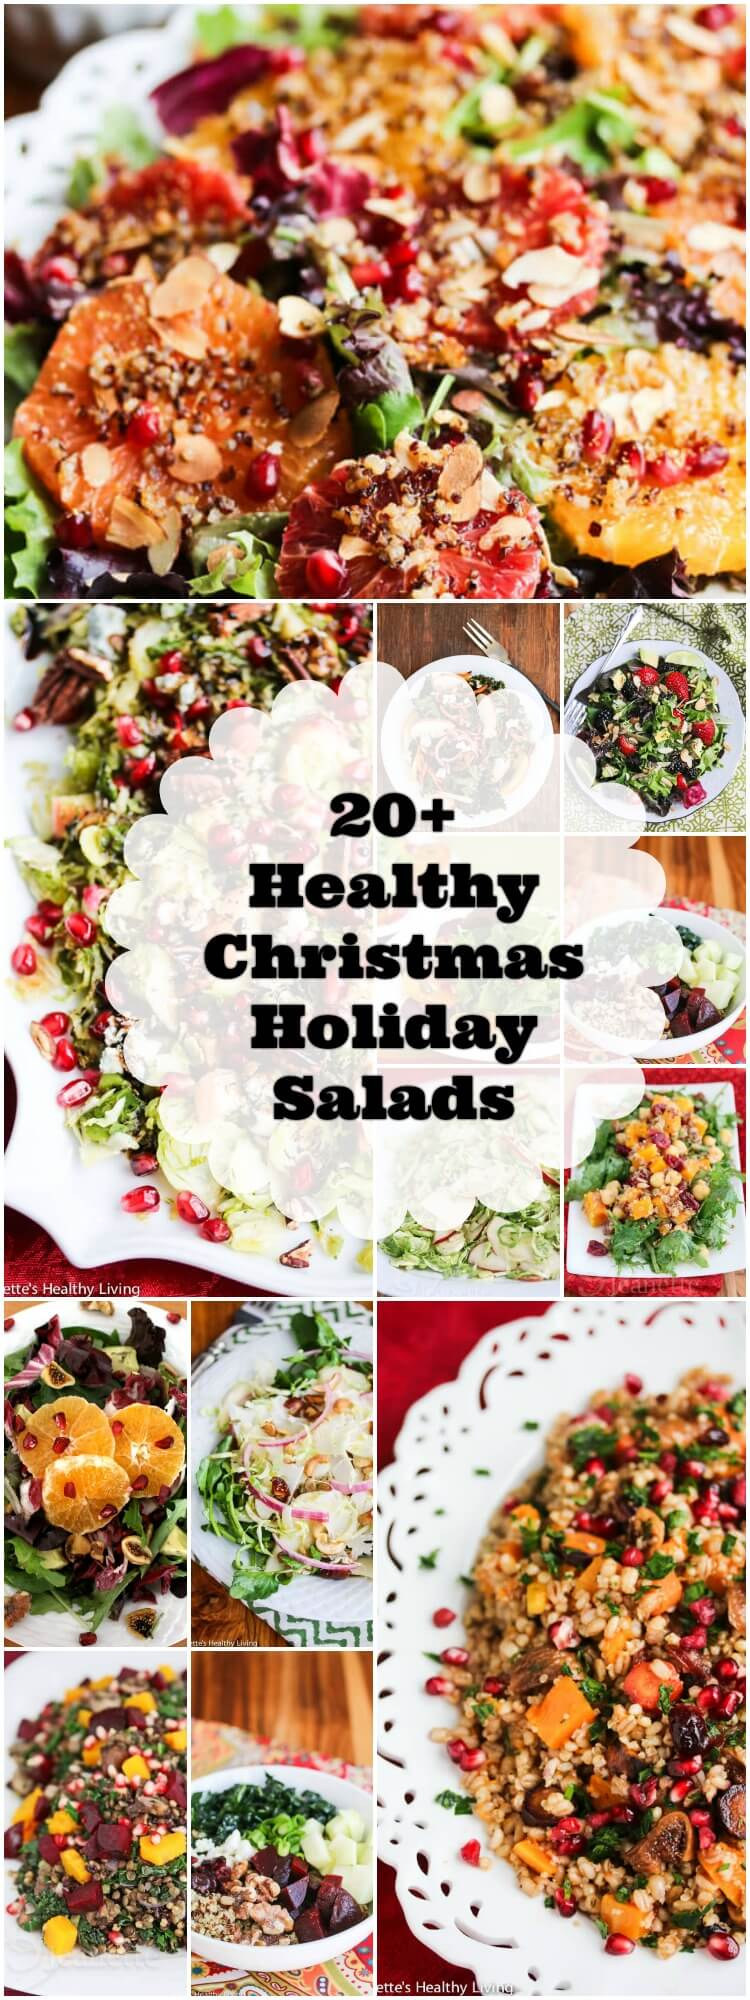 Healthy Christmas Holiday Salad Recipes - lighten up your Christmas holiday menu with one or more of these festive healthy salad recipes